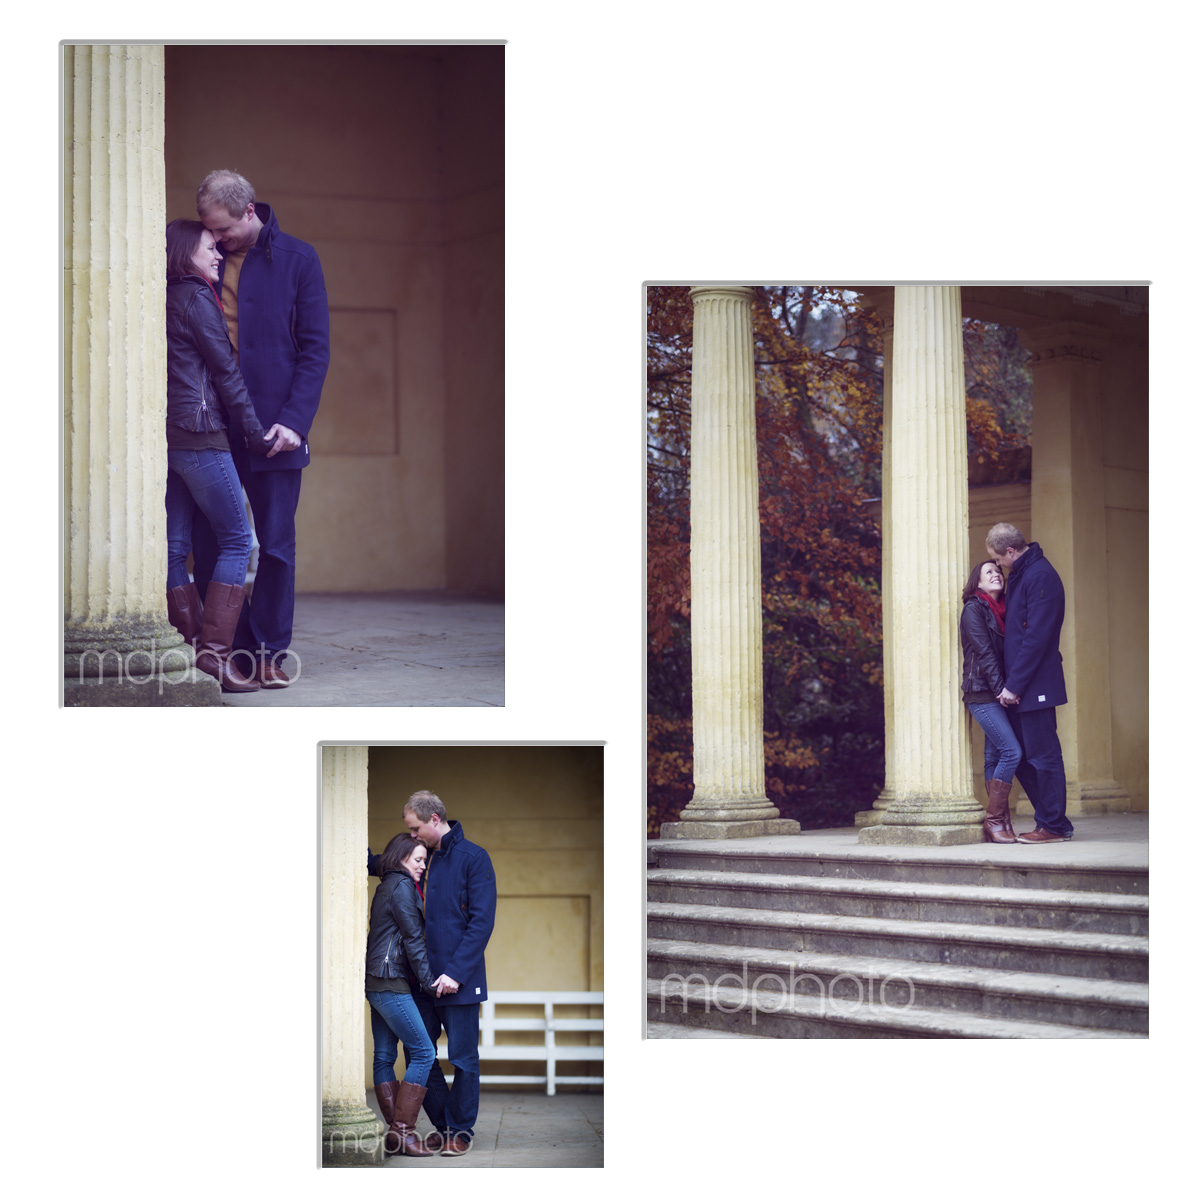 Stowe_Park_Engagement_Photo_Shoot_Ingleby_Barwick_Yarm_Wedding_mdphoto_2